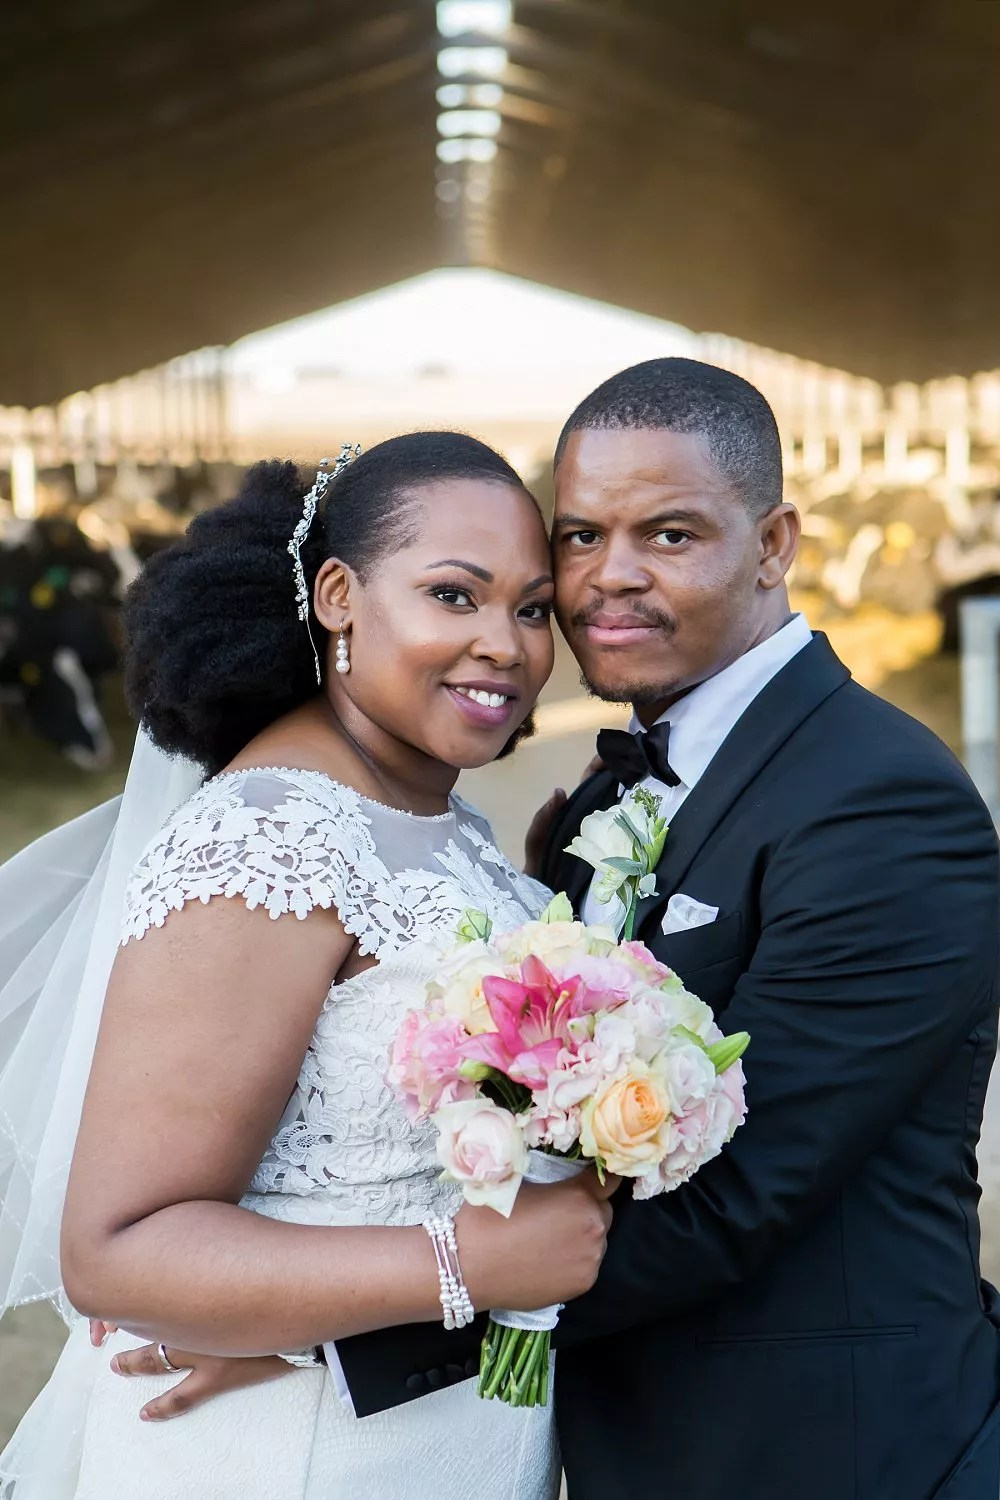 Eensgezind Durbanville Wedding Expressions Photography 100